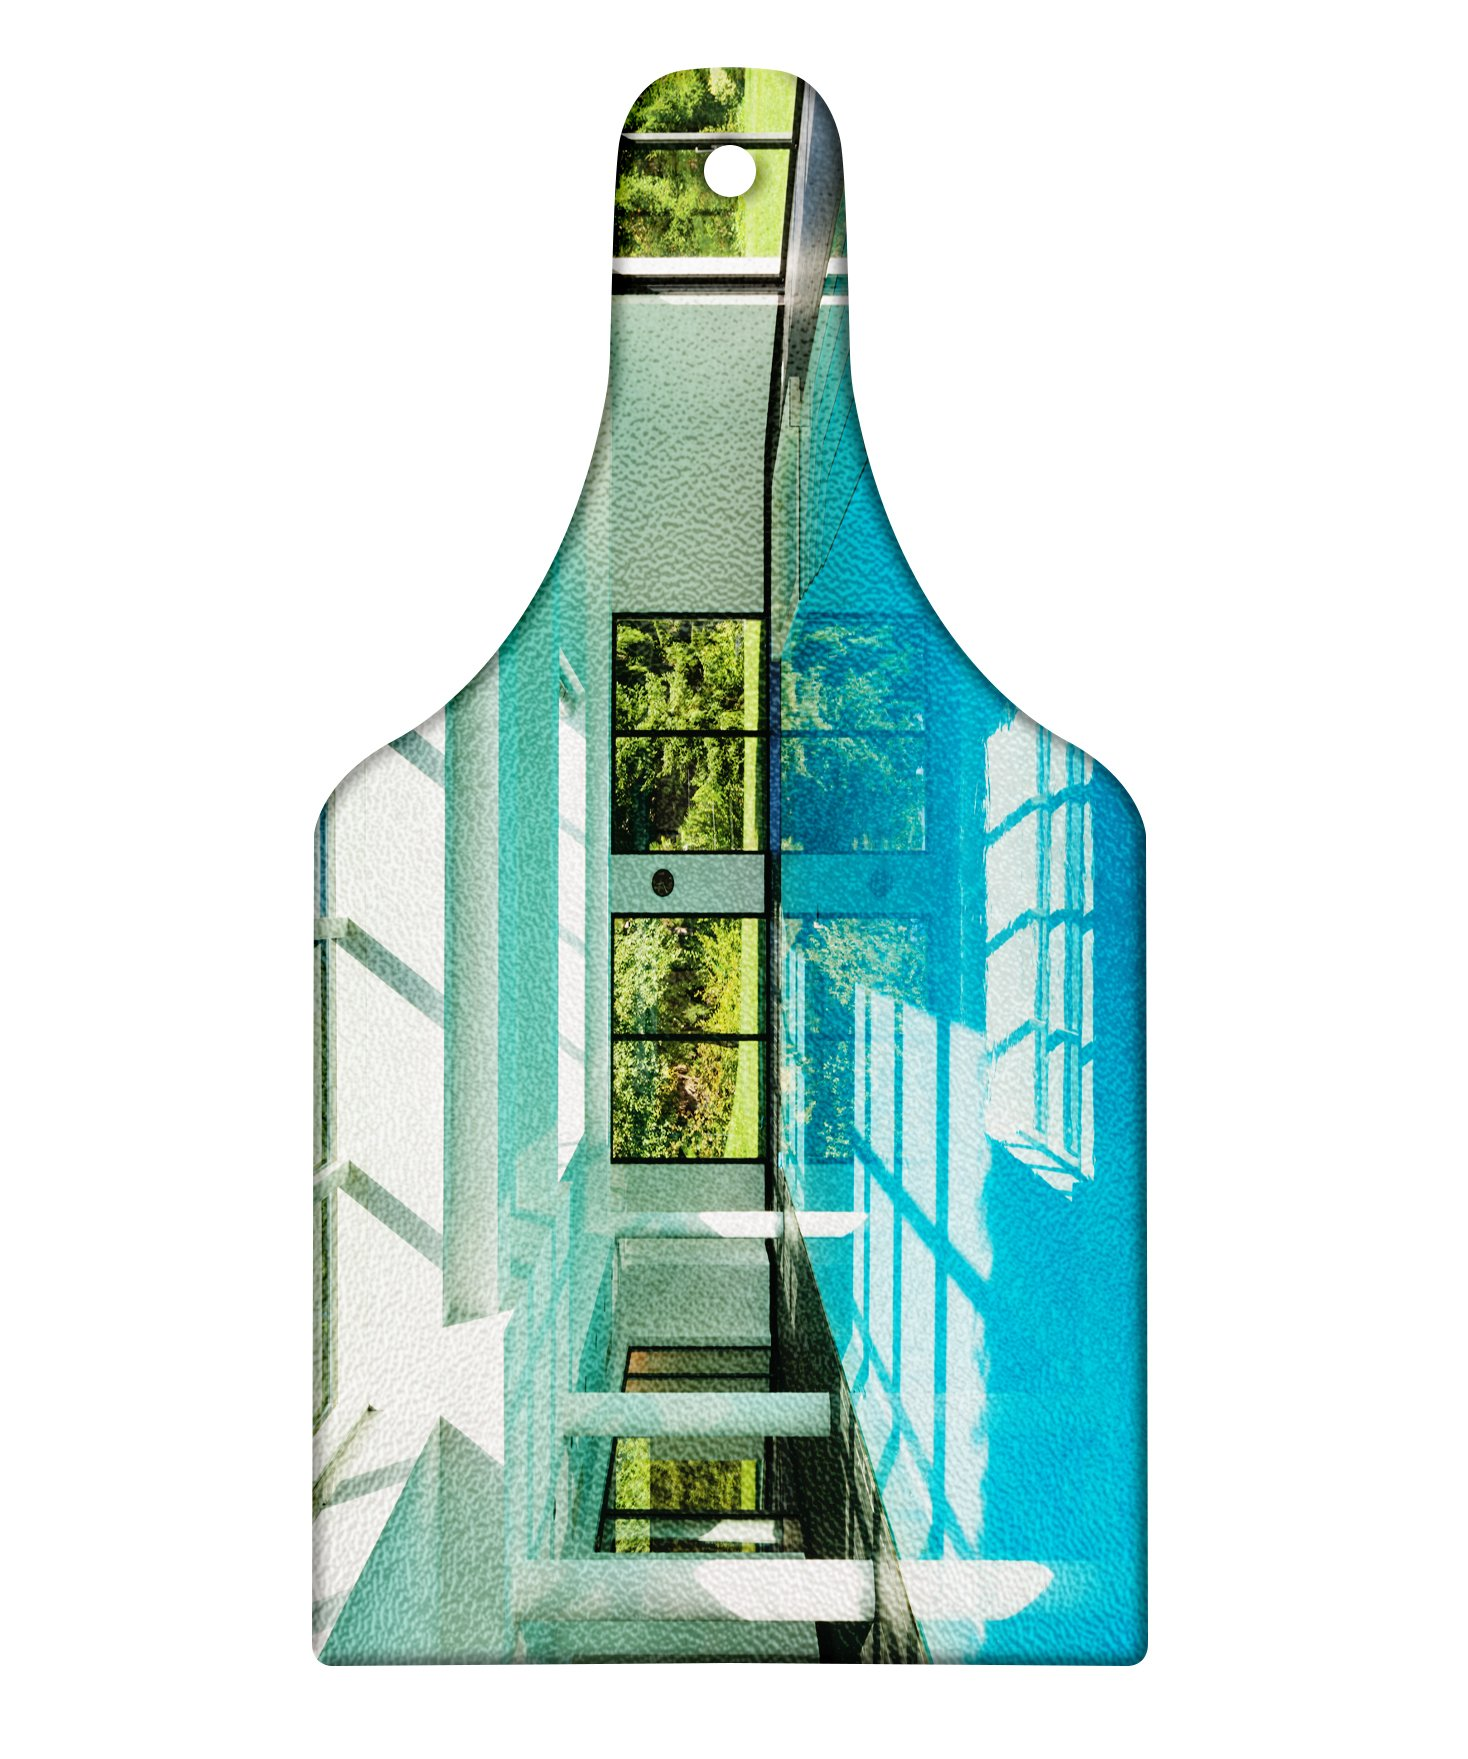 Lunarable Spa Cutting Board, Indoor Swimming Pool of a Modern House with Spa Window Residential Interior Design, Decorative Tempered Glass Cutting and Serving Board, Wine Bottle Shape, Mint Aqua Green